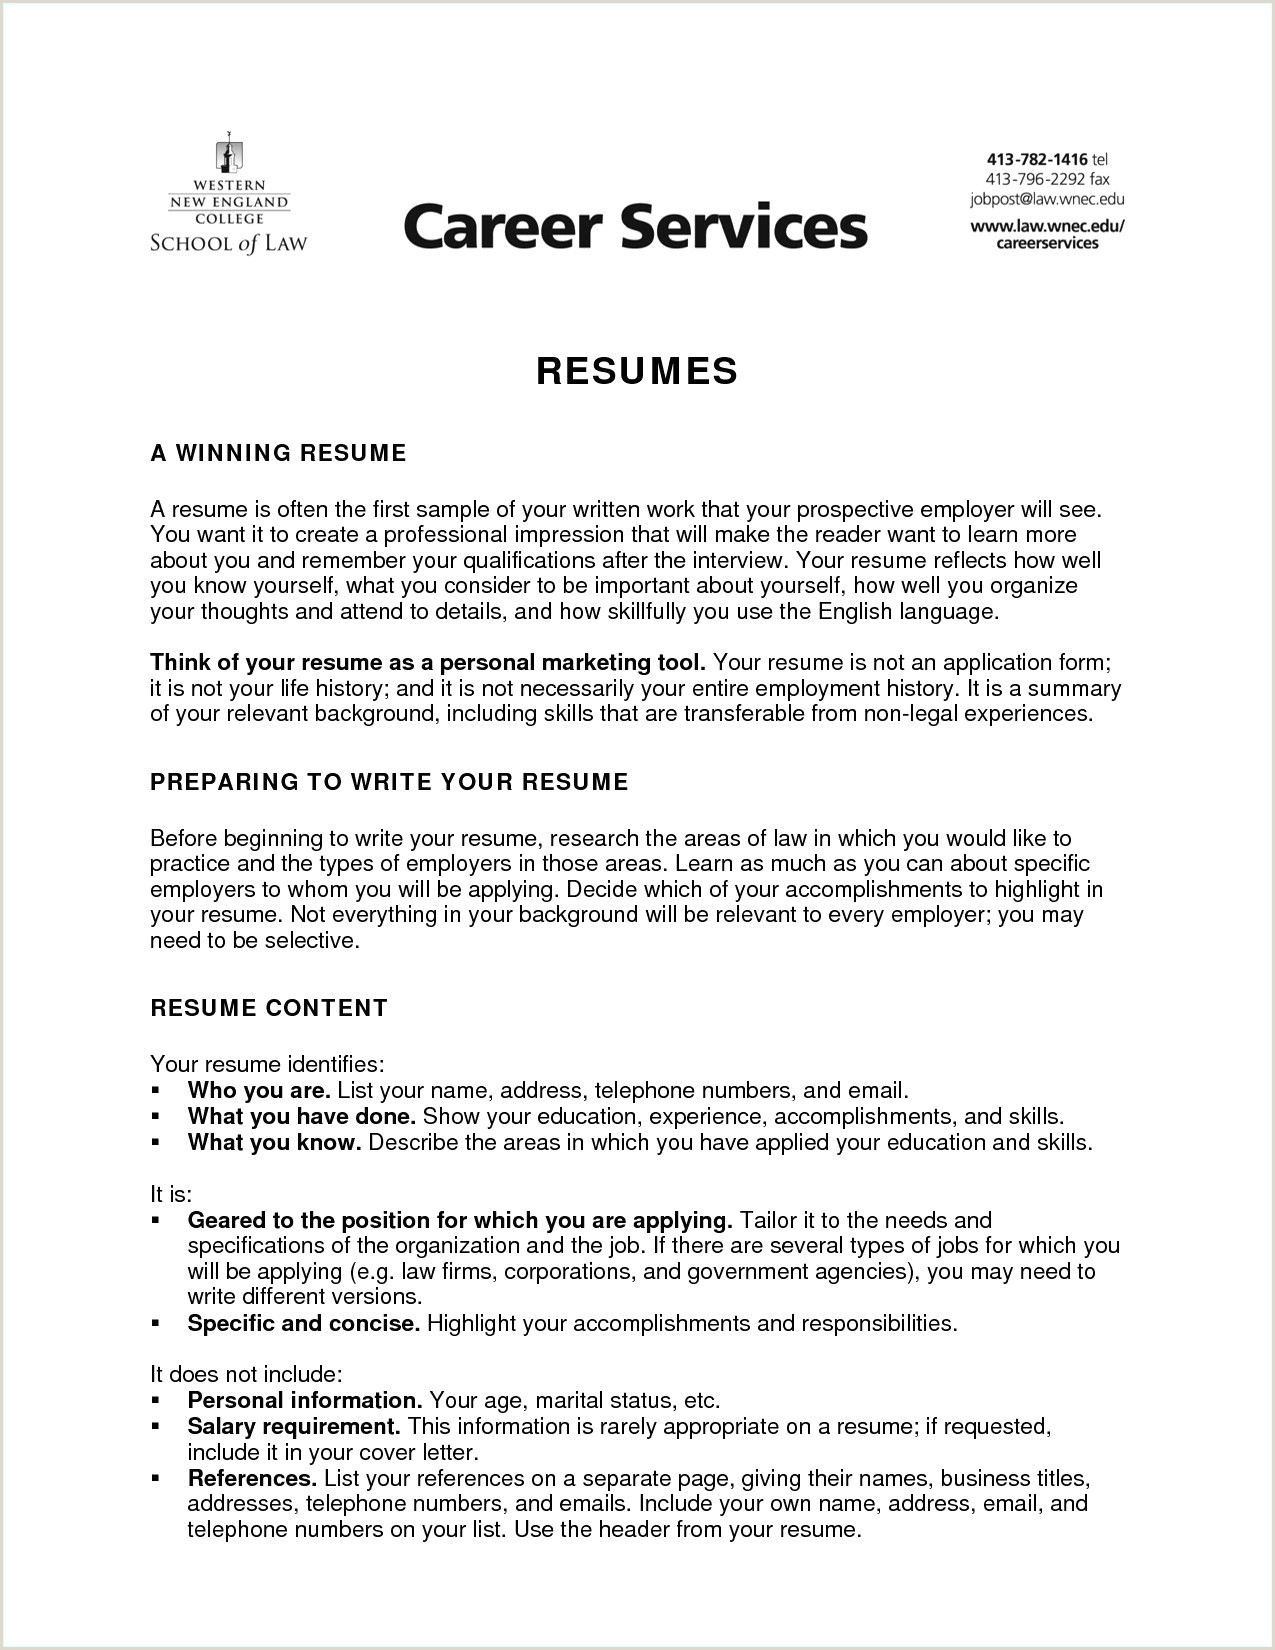 Resume for Government Job Resume Template Ideas New Customer Service Skills for Resume